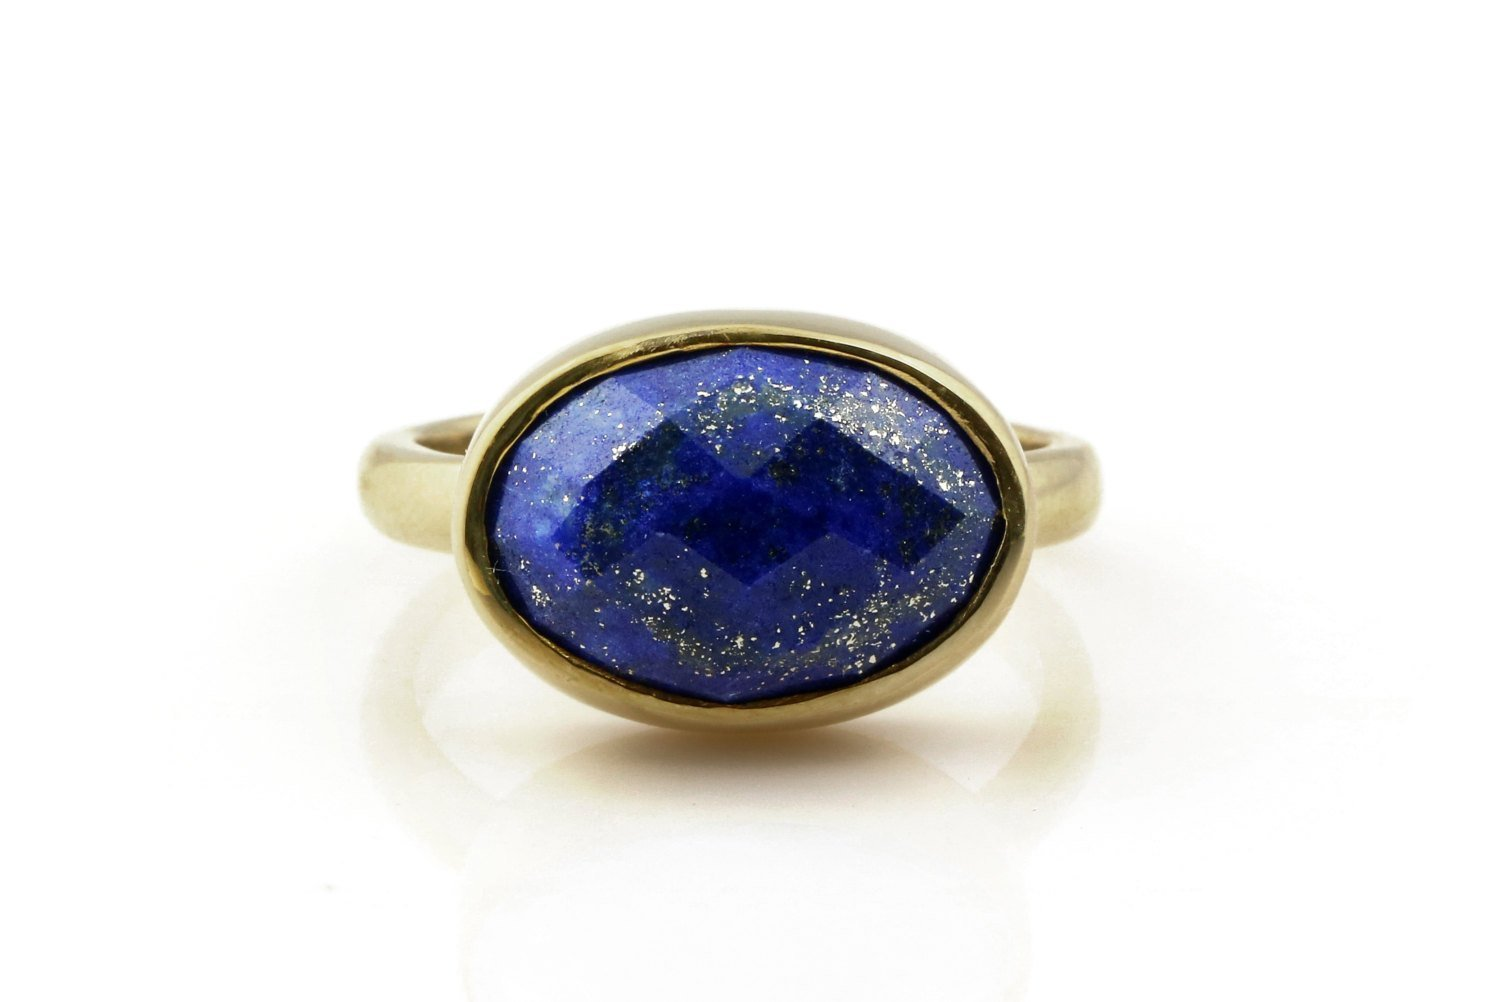 Lapis ring, oval ring, September birthstone ring, holiday gift, custom ring, personalized ring, engraved ring